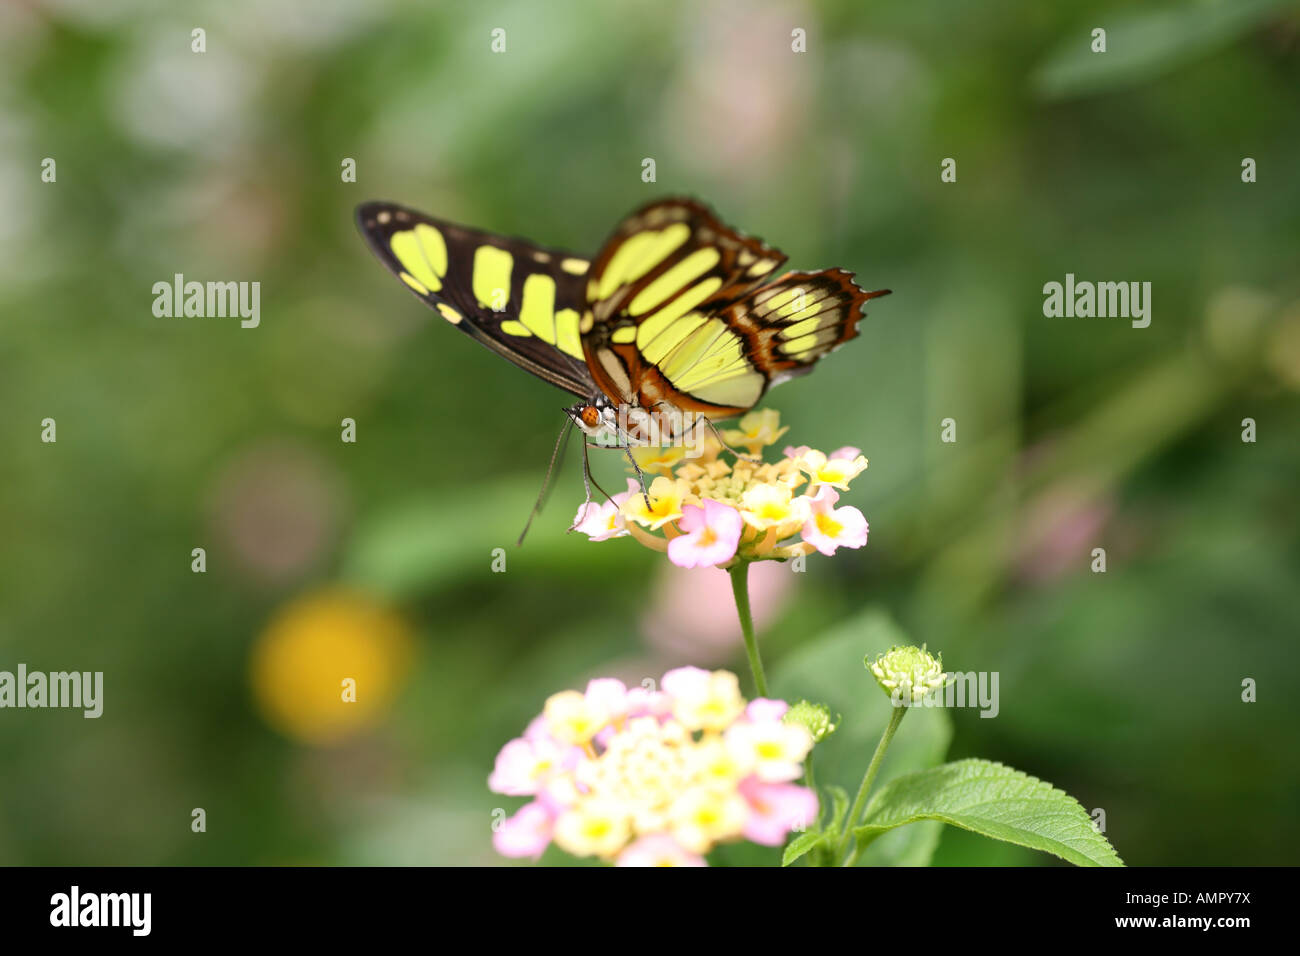 Malachite Butterfly on flower Stock Photo